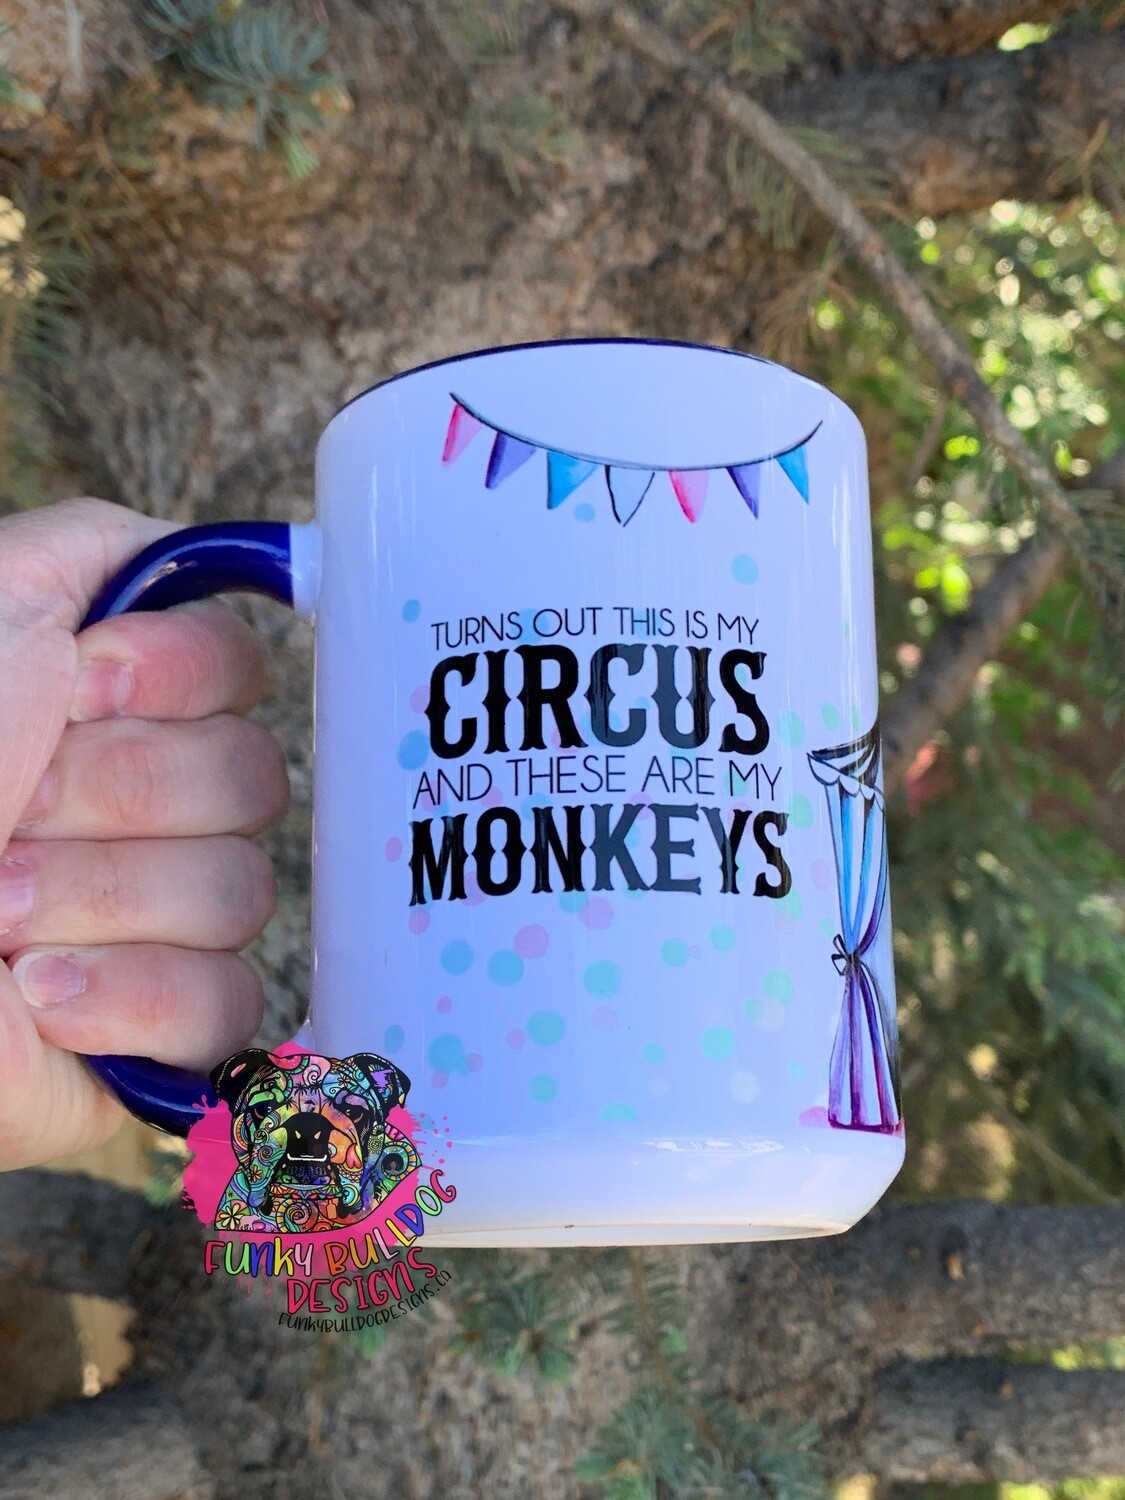 15oz Ceramic Mug (Navy Blue handle) - Turns out this is my Circus and these are my monkeys